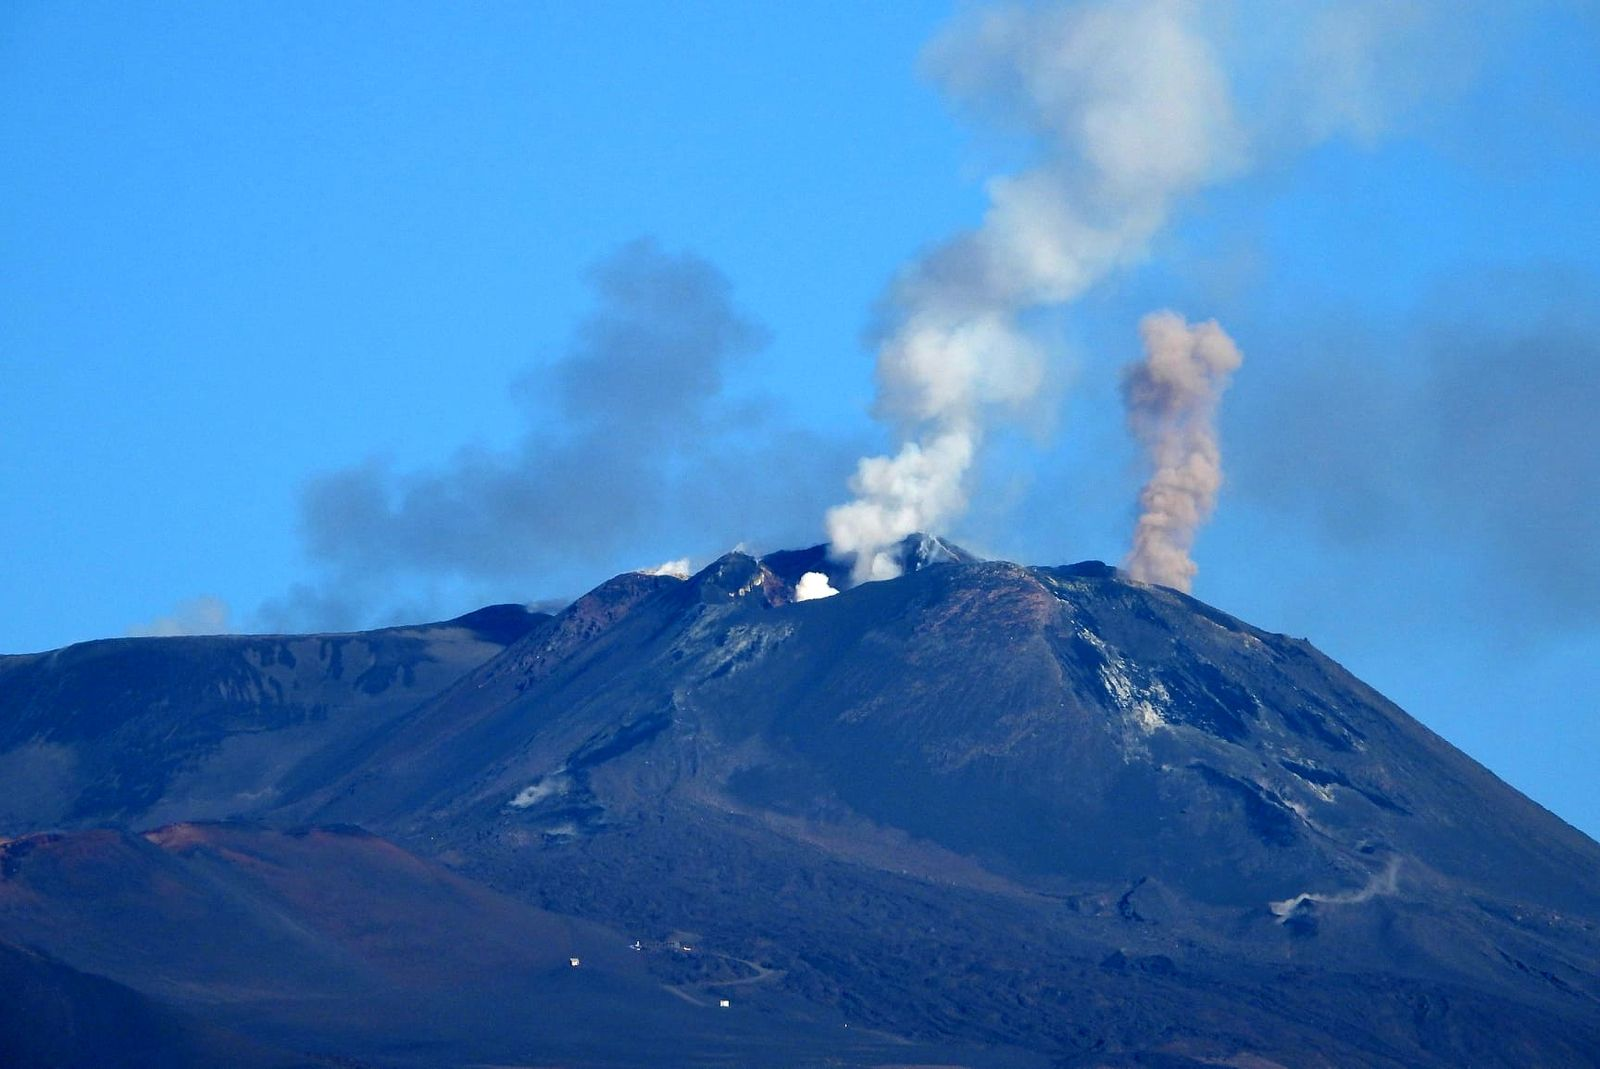 Etna - 15.11.2020 - emission at the BN (left) - at the SEC mouth of the saddle (in the center) and at the SEC mouth east (on the right) - photo INGV OE